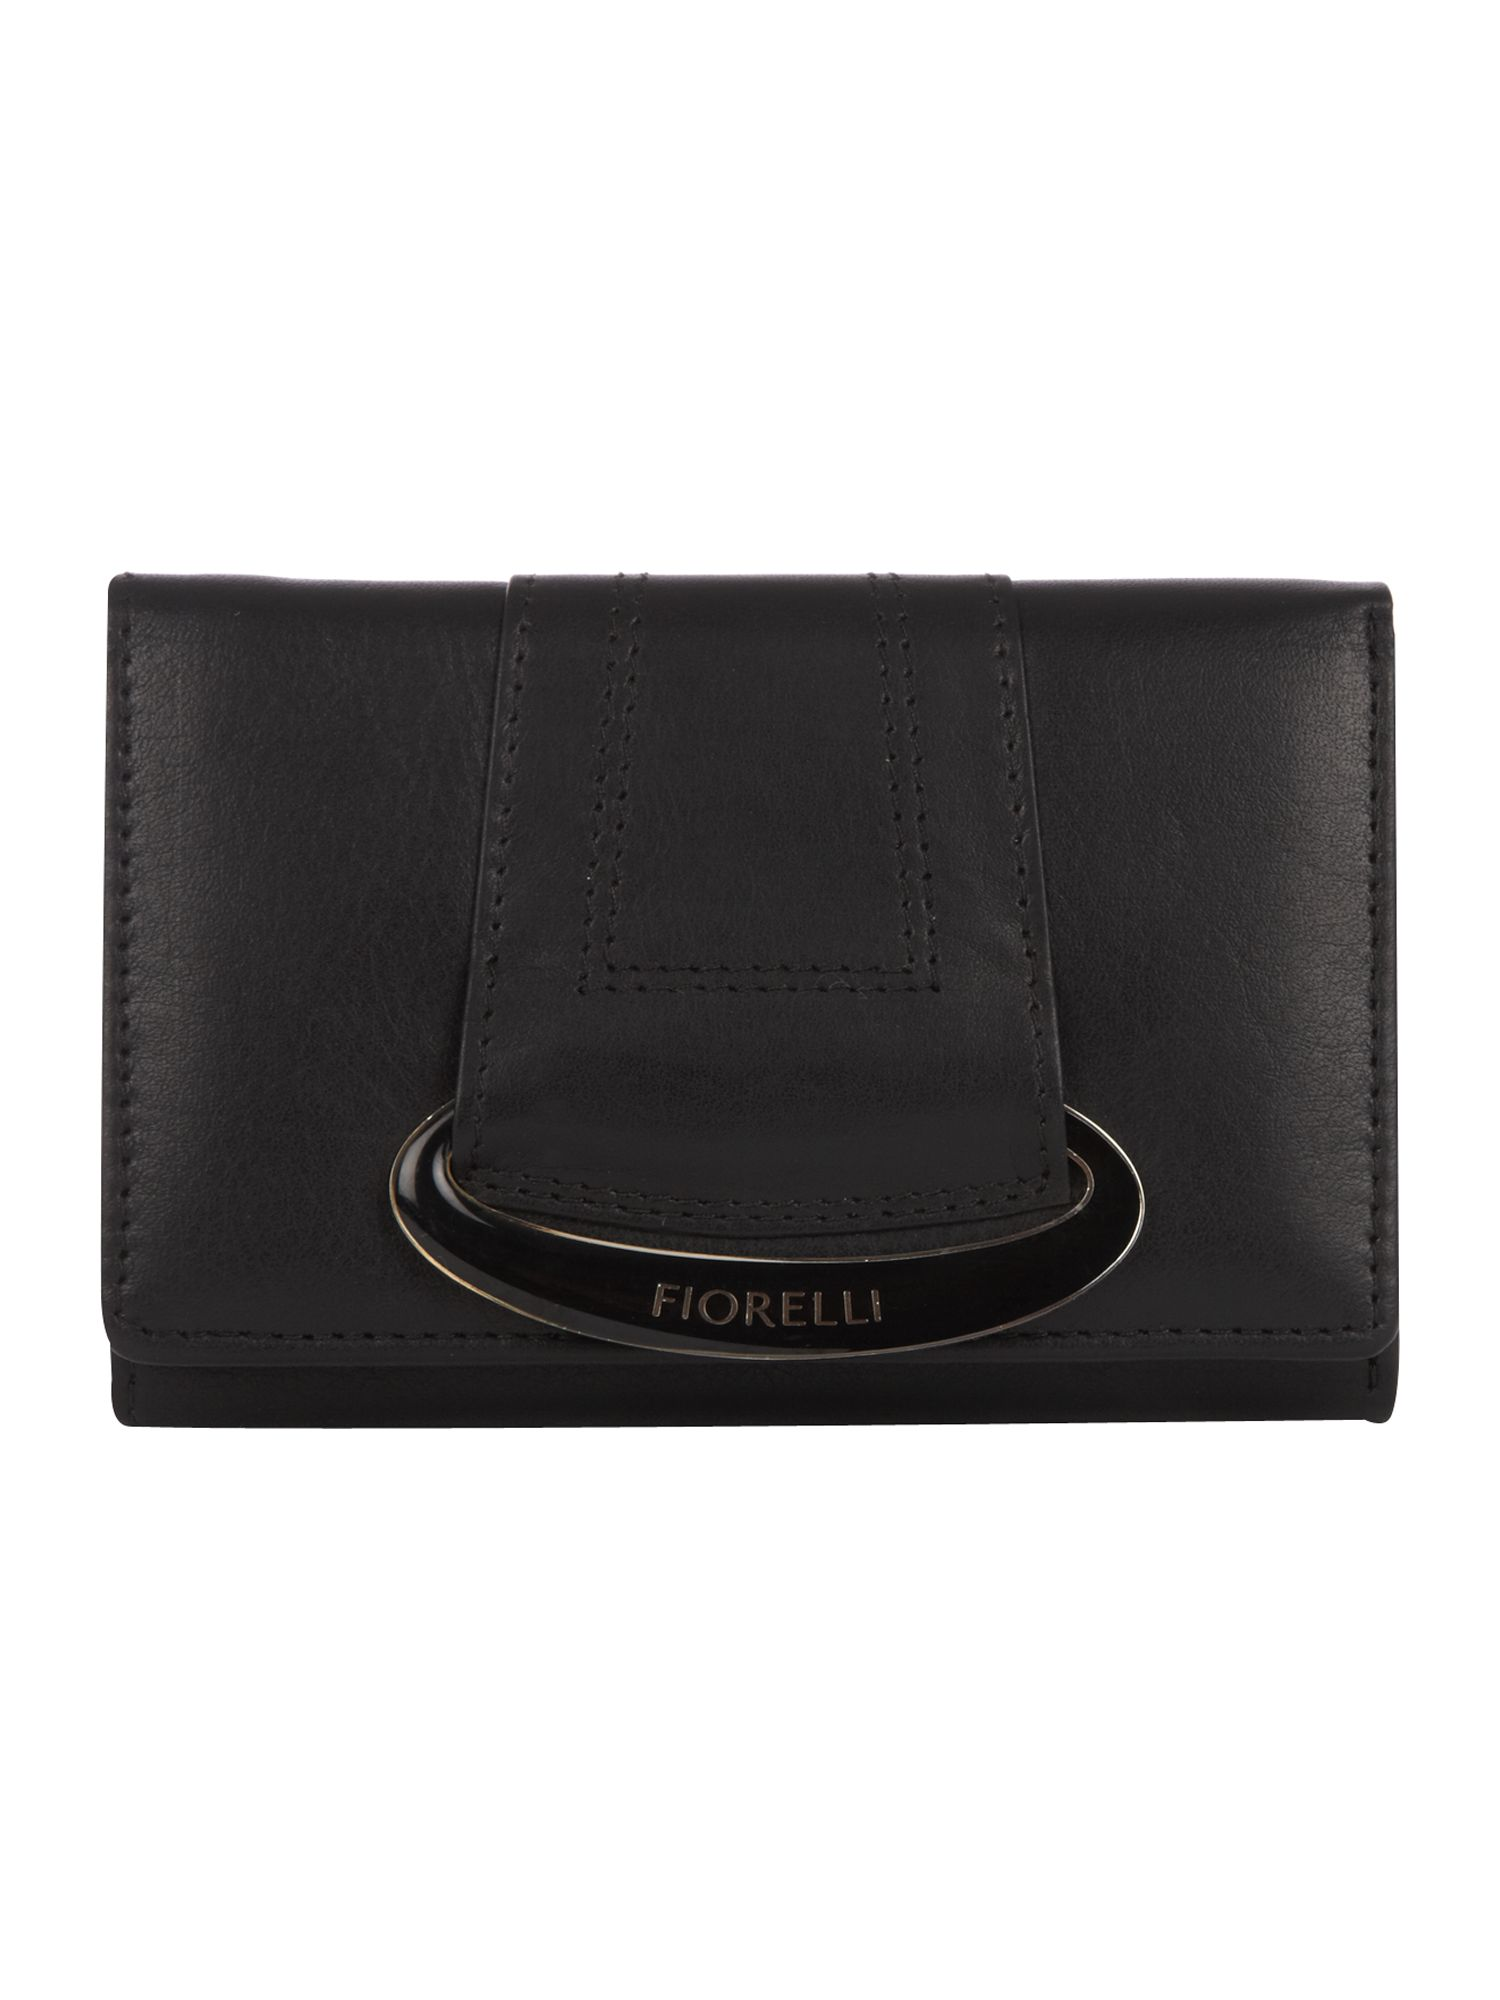 Fiorelli Oval Medium Fold Over Purse, Black